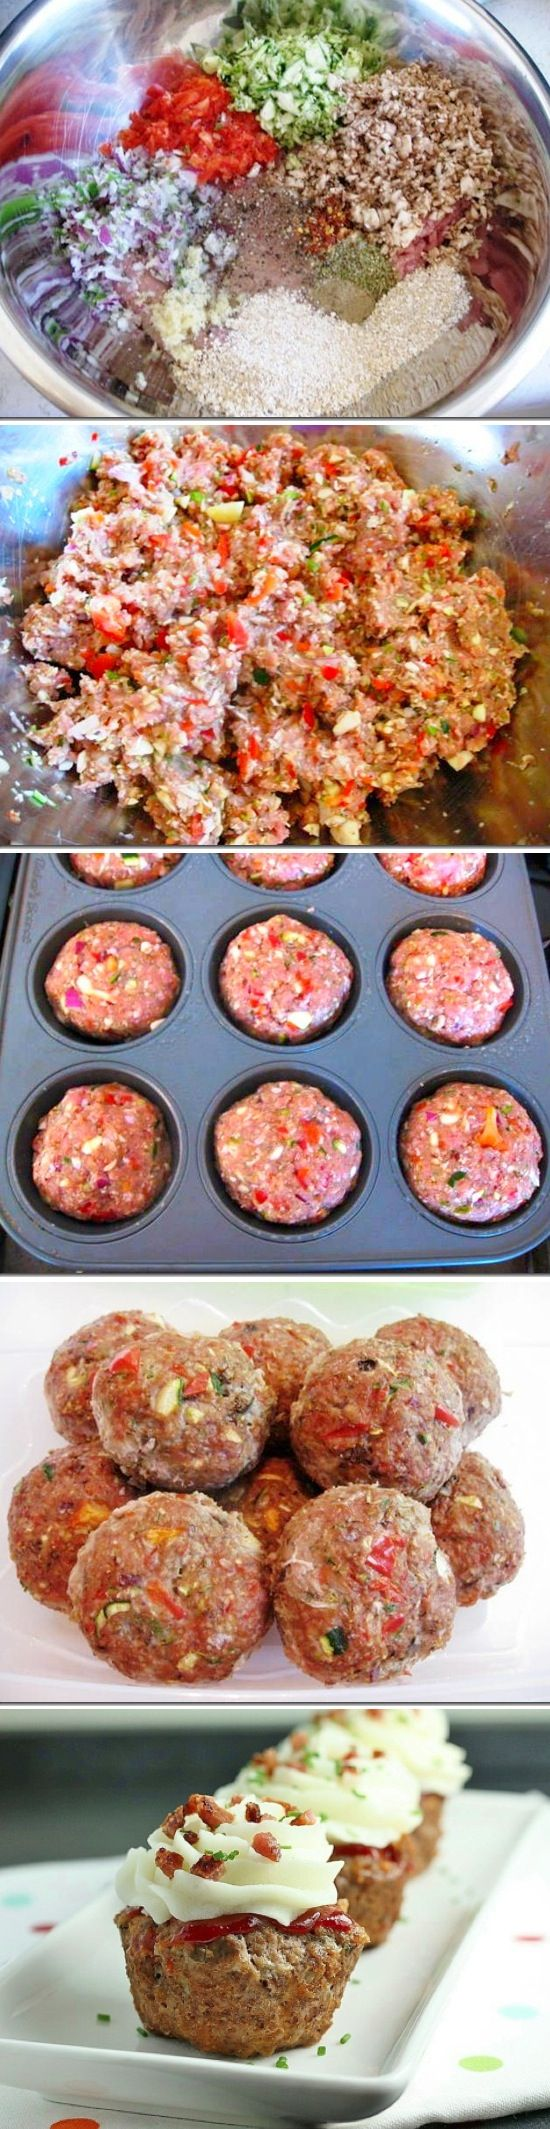 Meatloaf Cupcakes made with turkey and veggie's then topped with mashed potatoes.